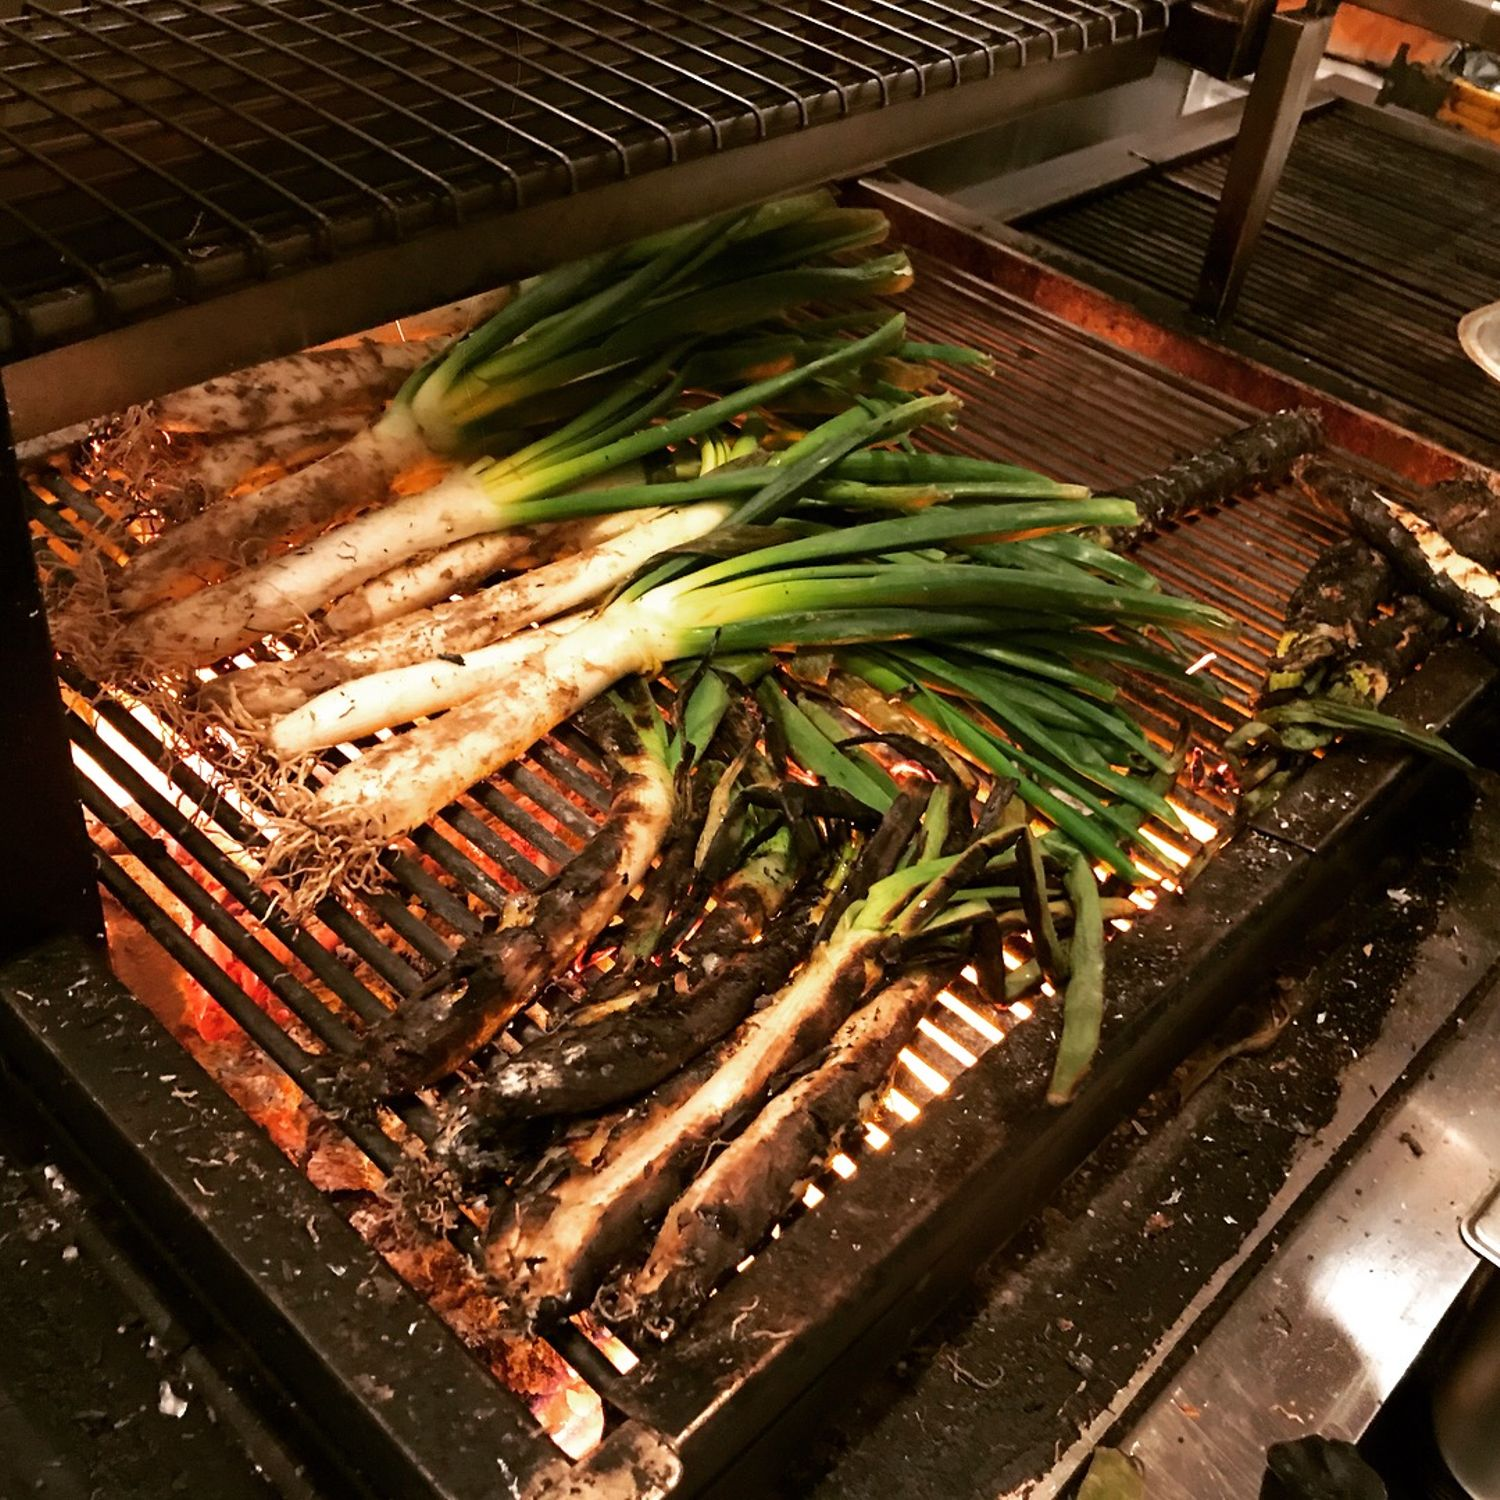 Calcots being cooked on asado grill at Asador 44 Cardiff